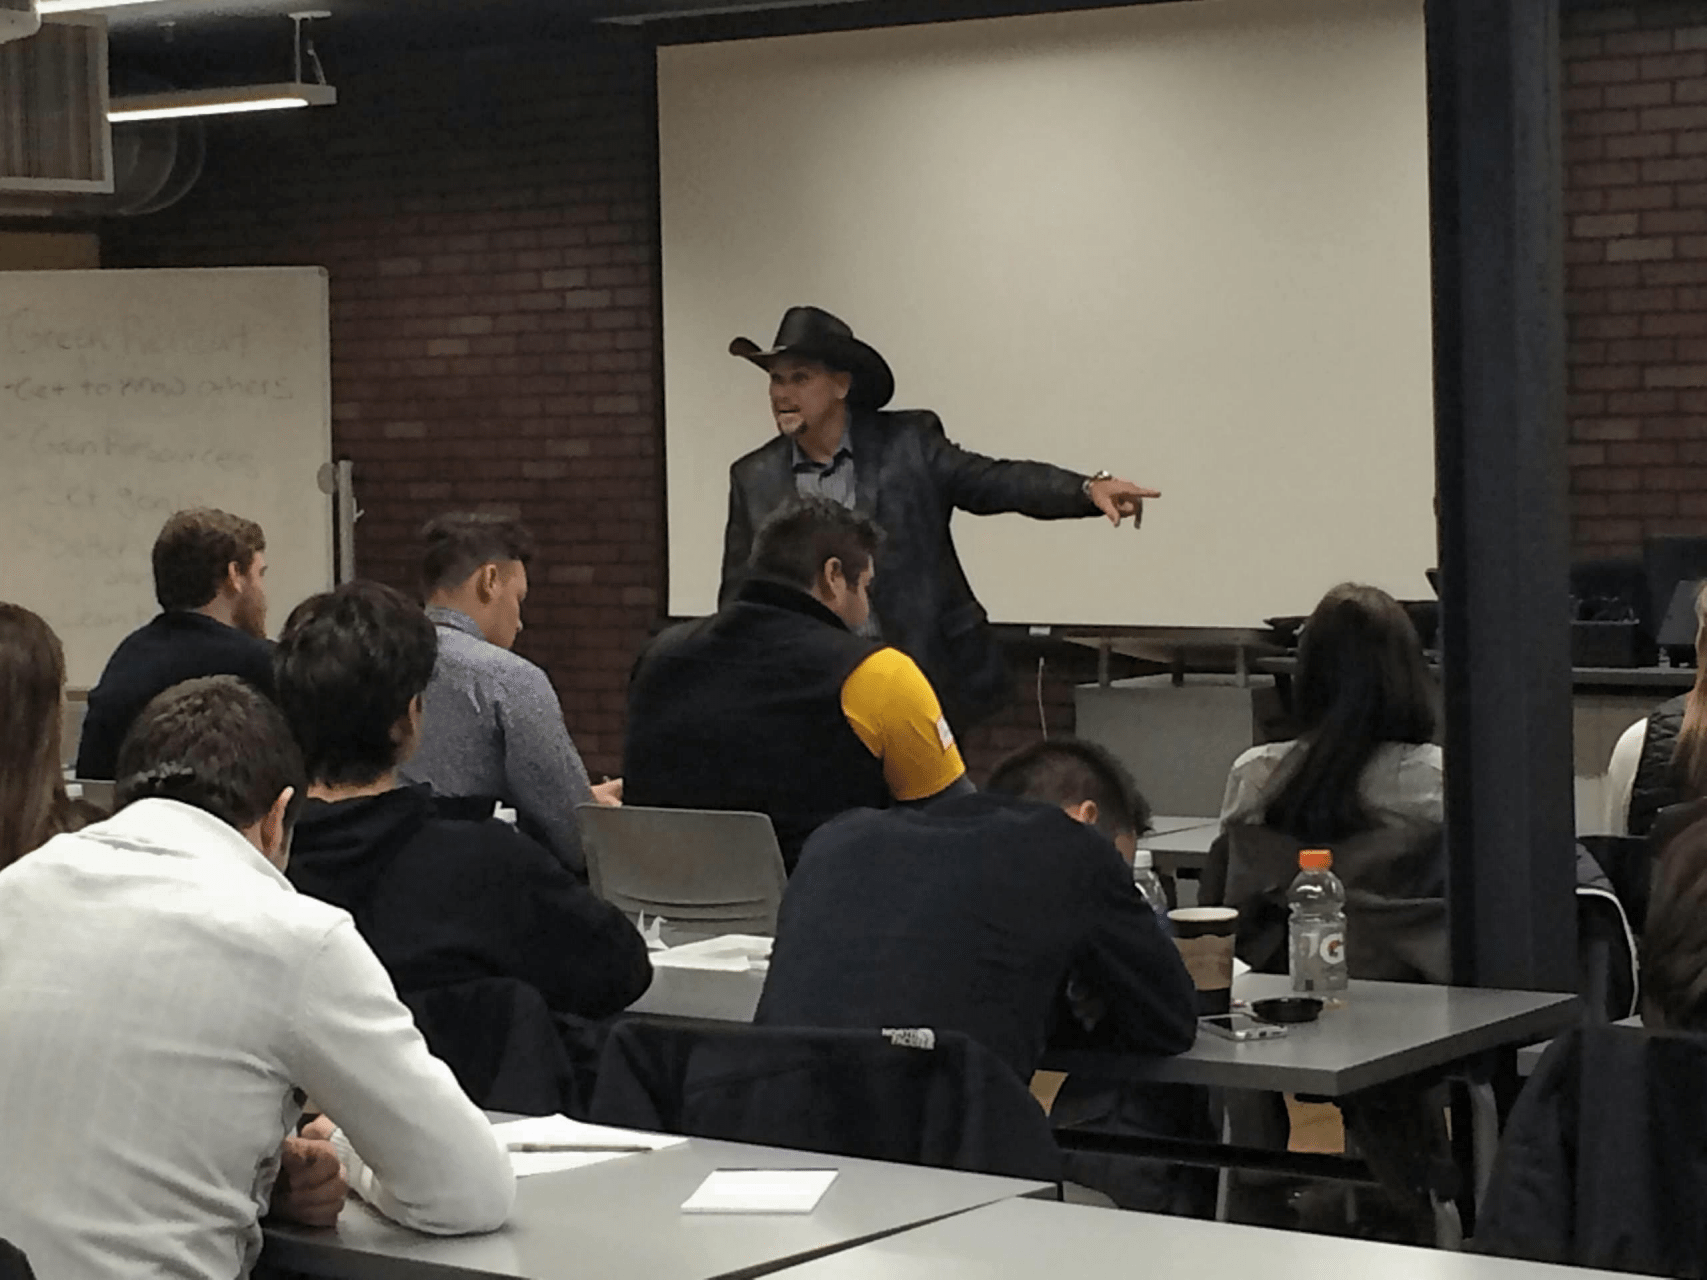 MOTIVATIONAL COWBOY SPEAKING